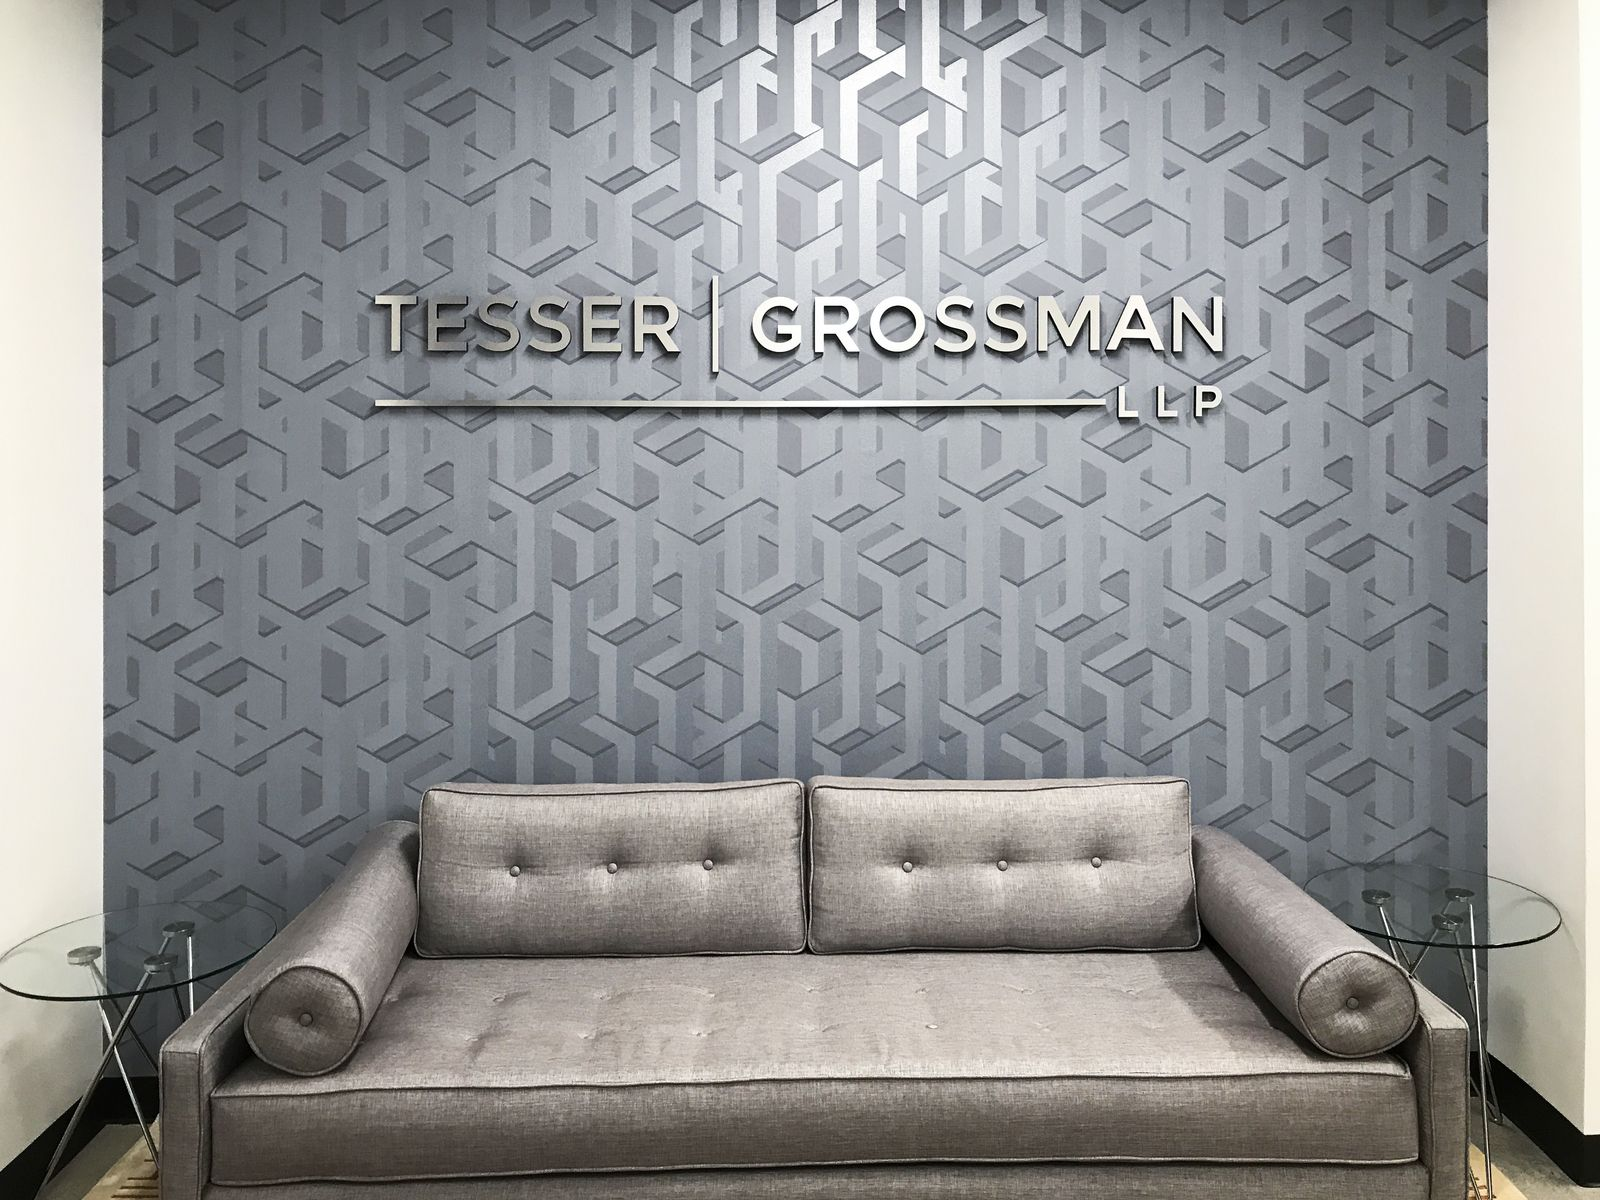 Tesser Grossman LLP 3d sign letters with a silver brushed finish made of ultra board